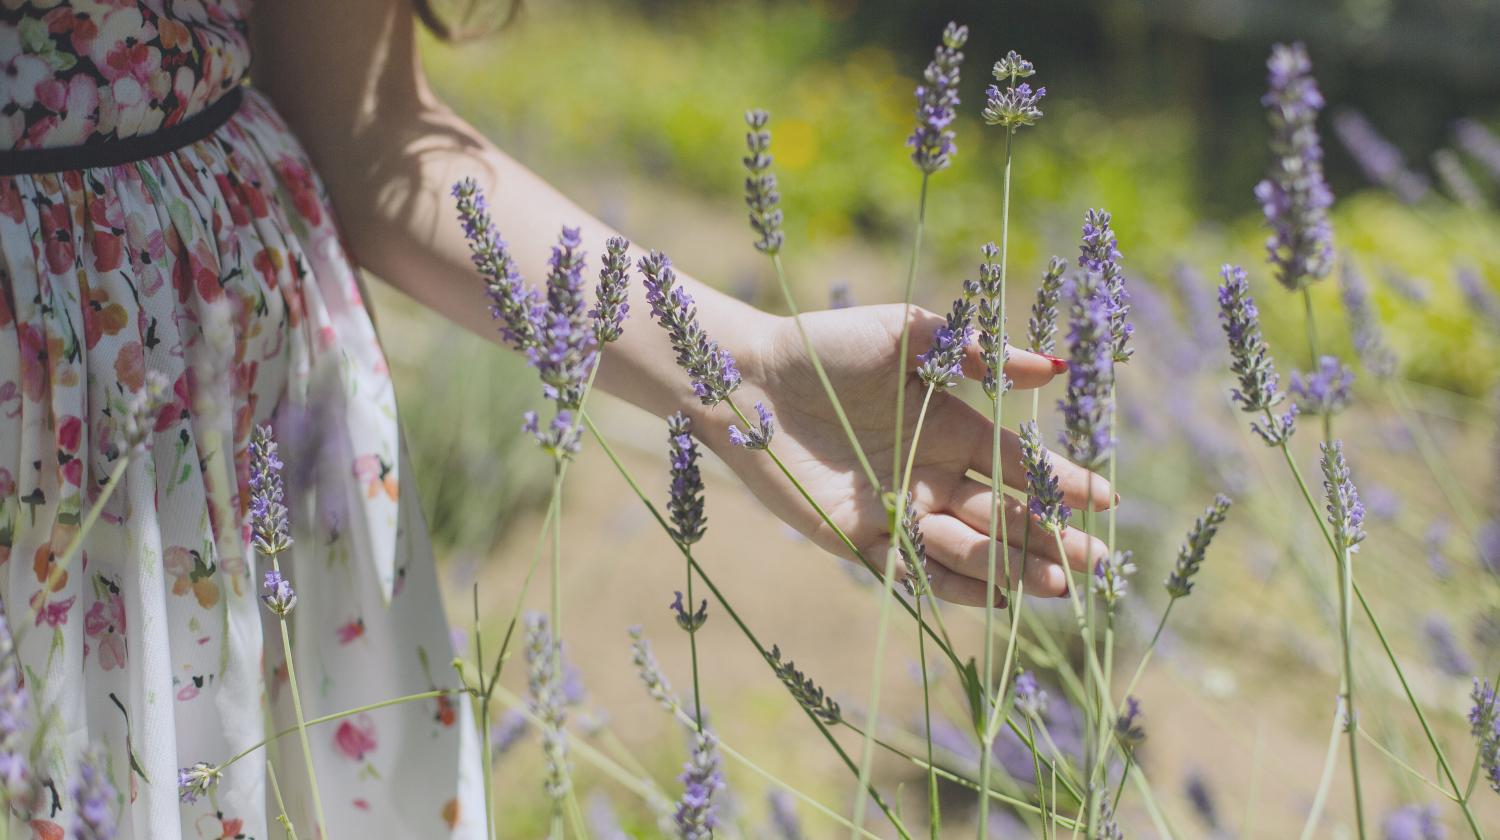 Featured | woman lavender field | Herbs For A Stress-Free Life | herbs for stress and anxiety